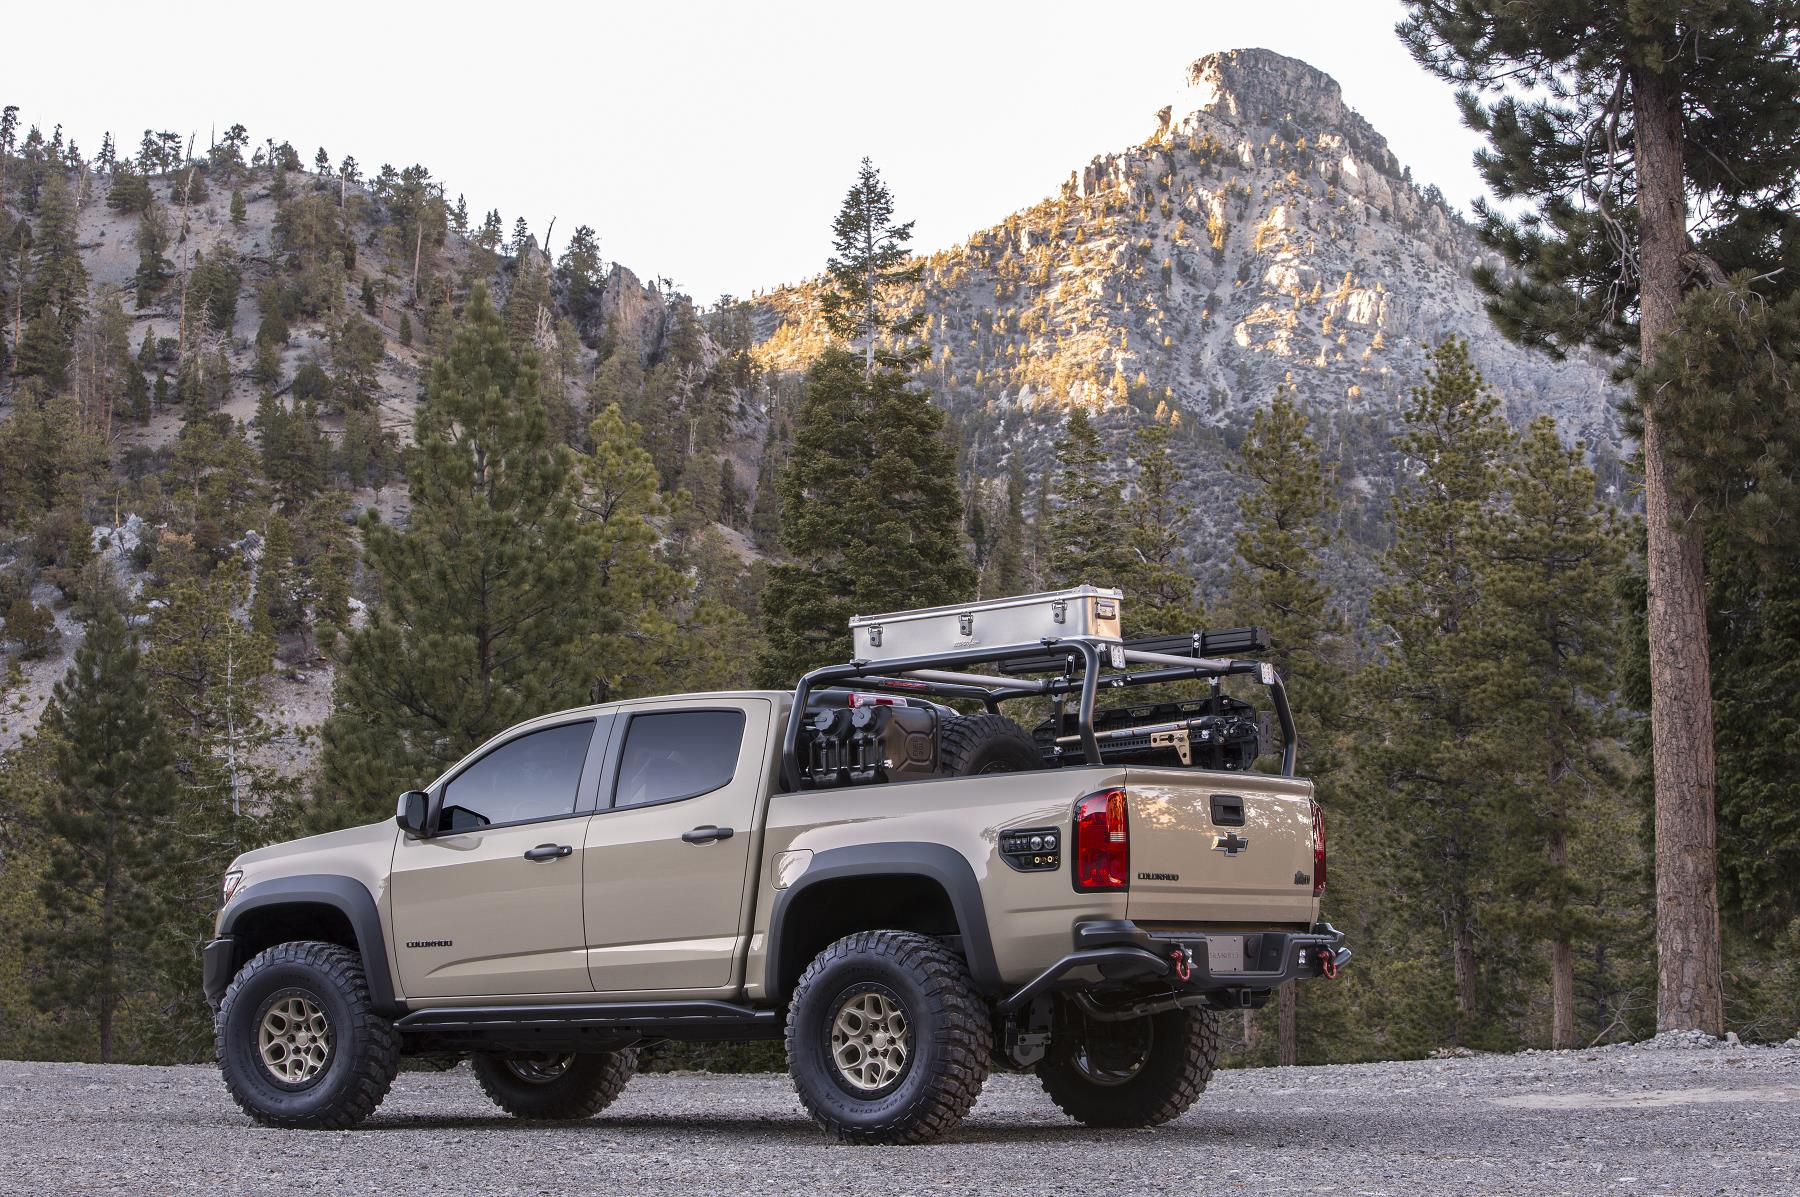 Chevy Colorado Concepts Built for Overlanding, Desert Racing at SEMA